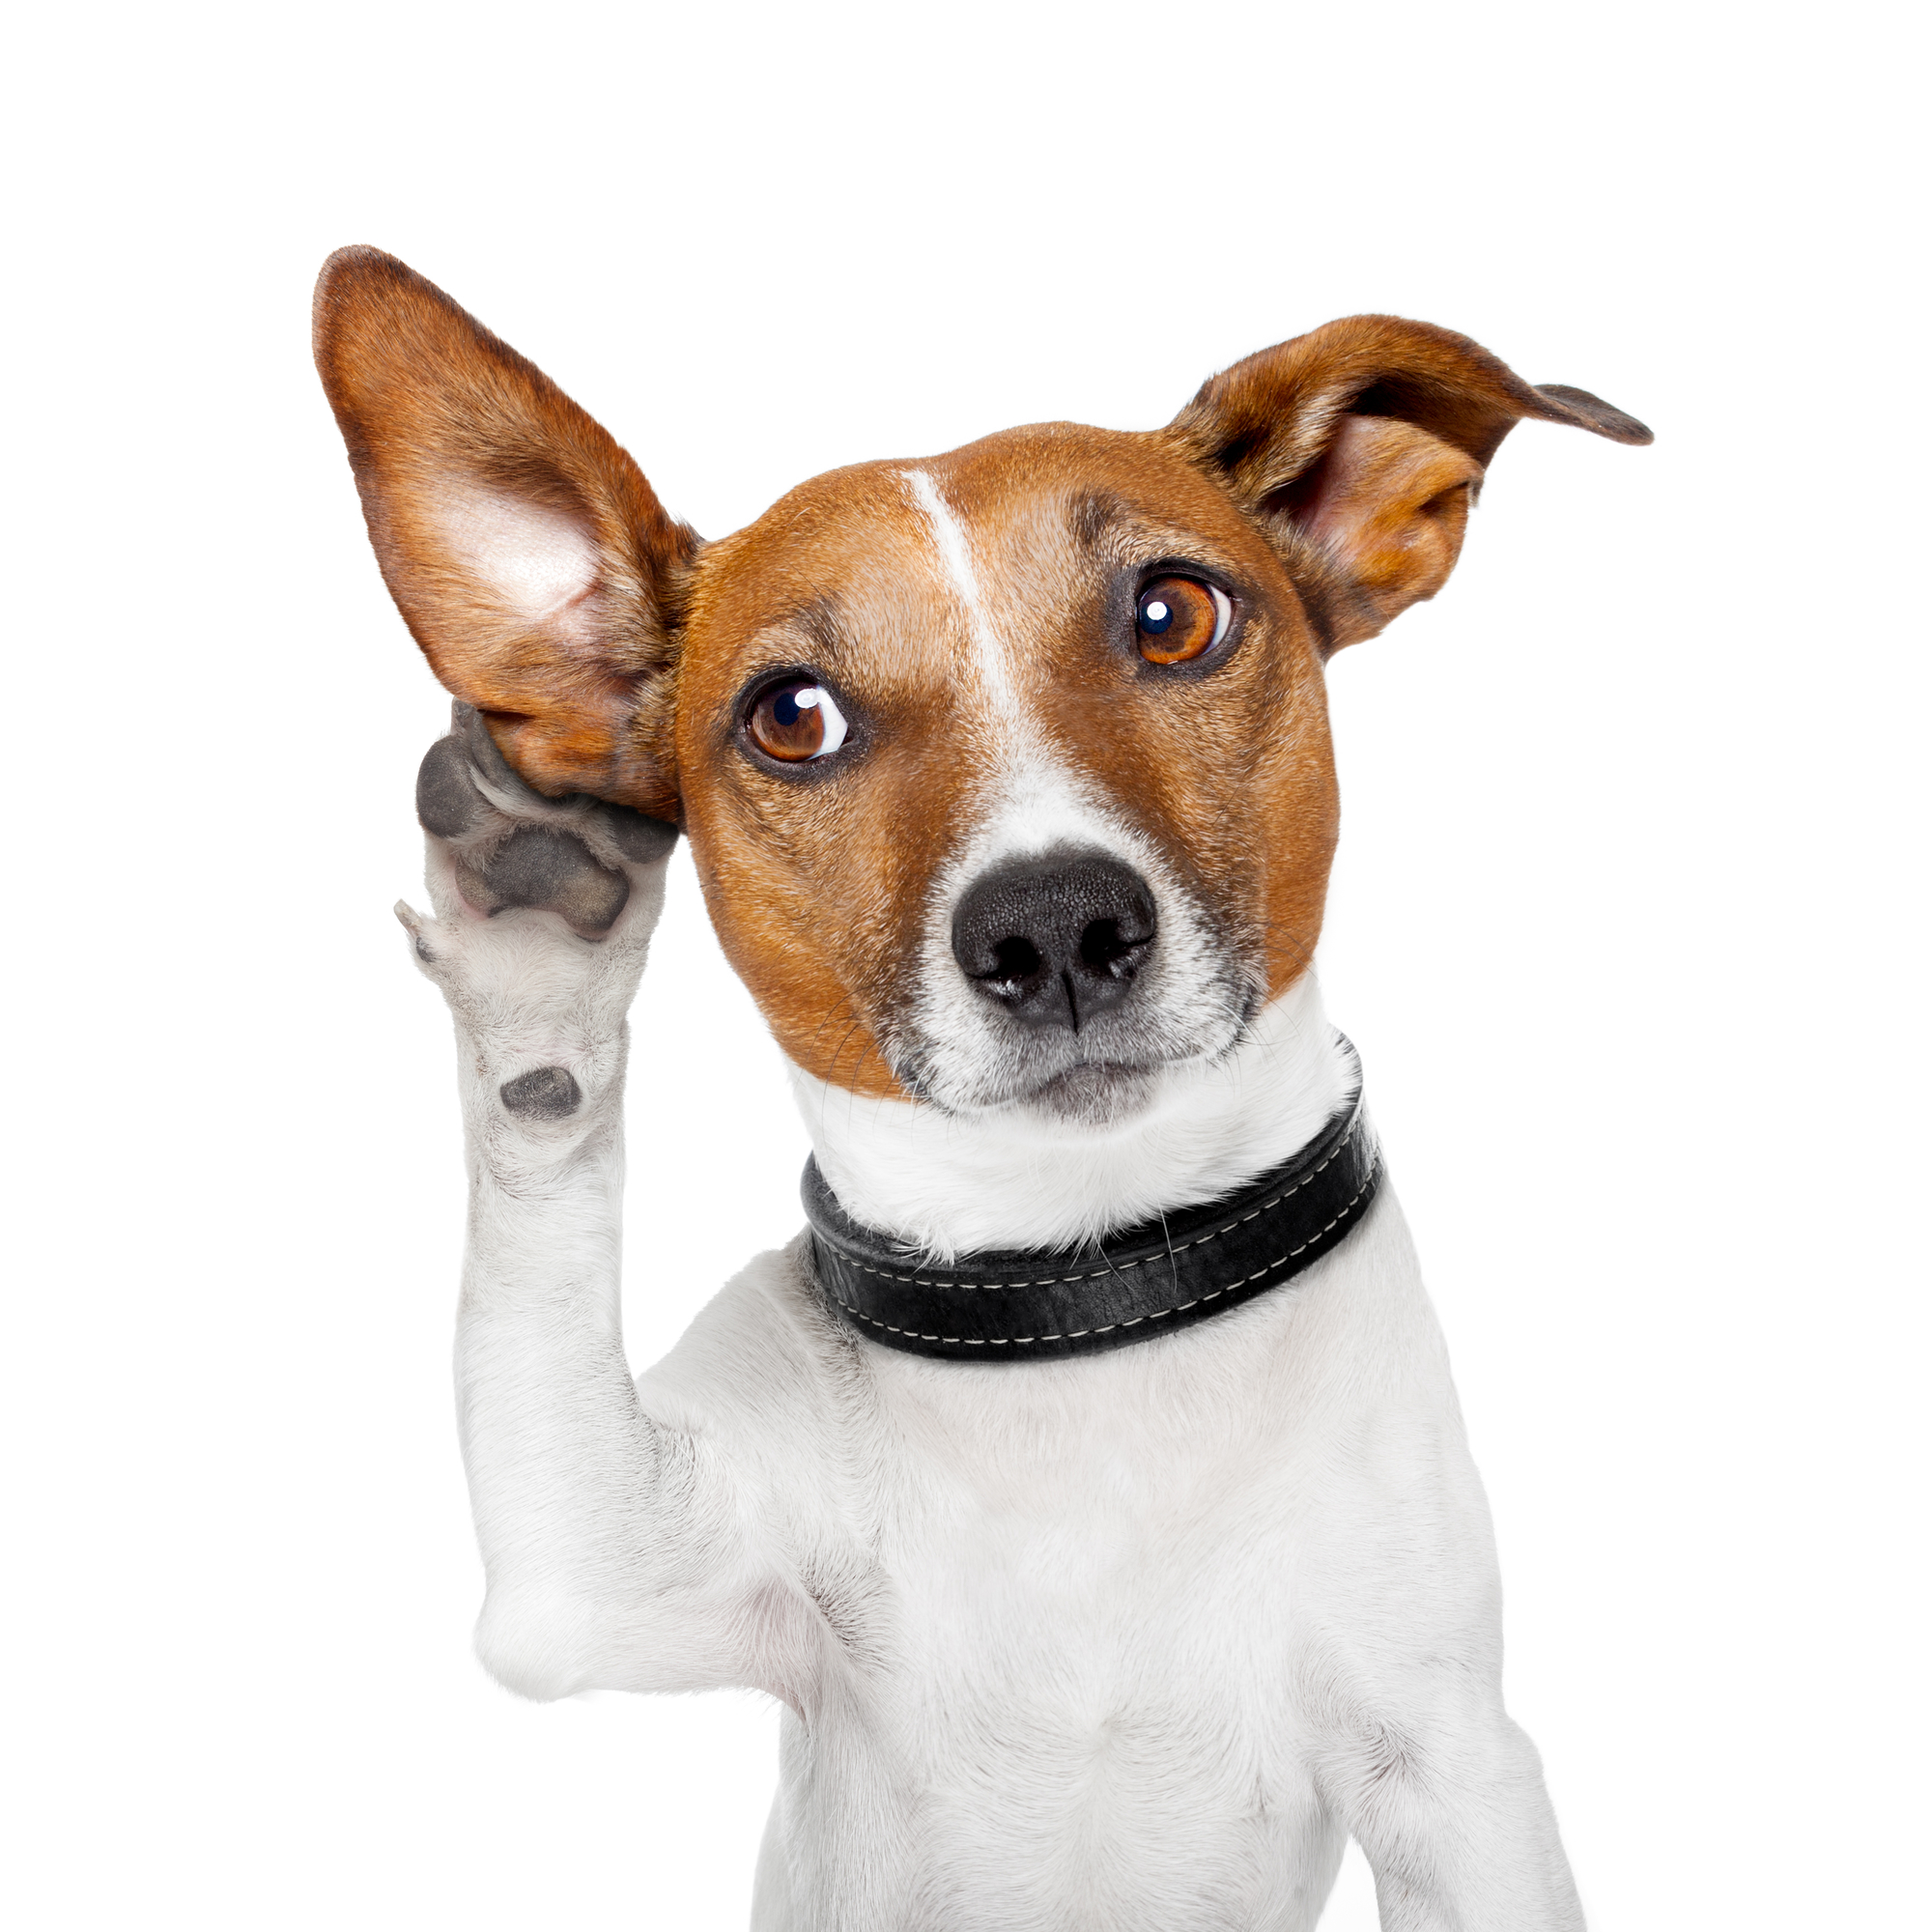 10 Essential Tips for Cleaning Your Dog's Ears